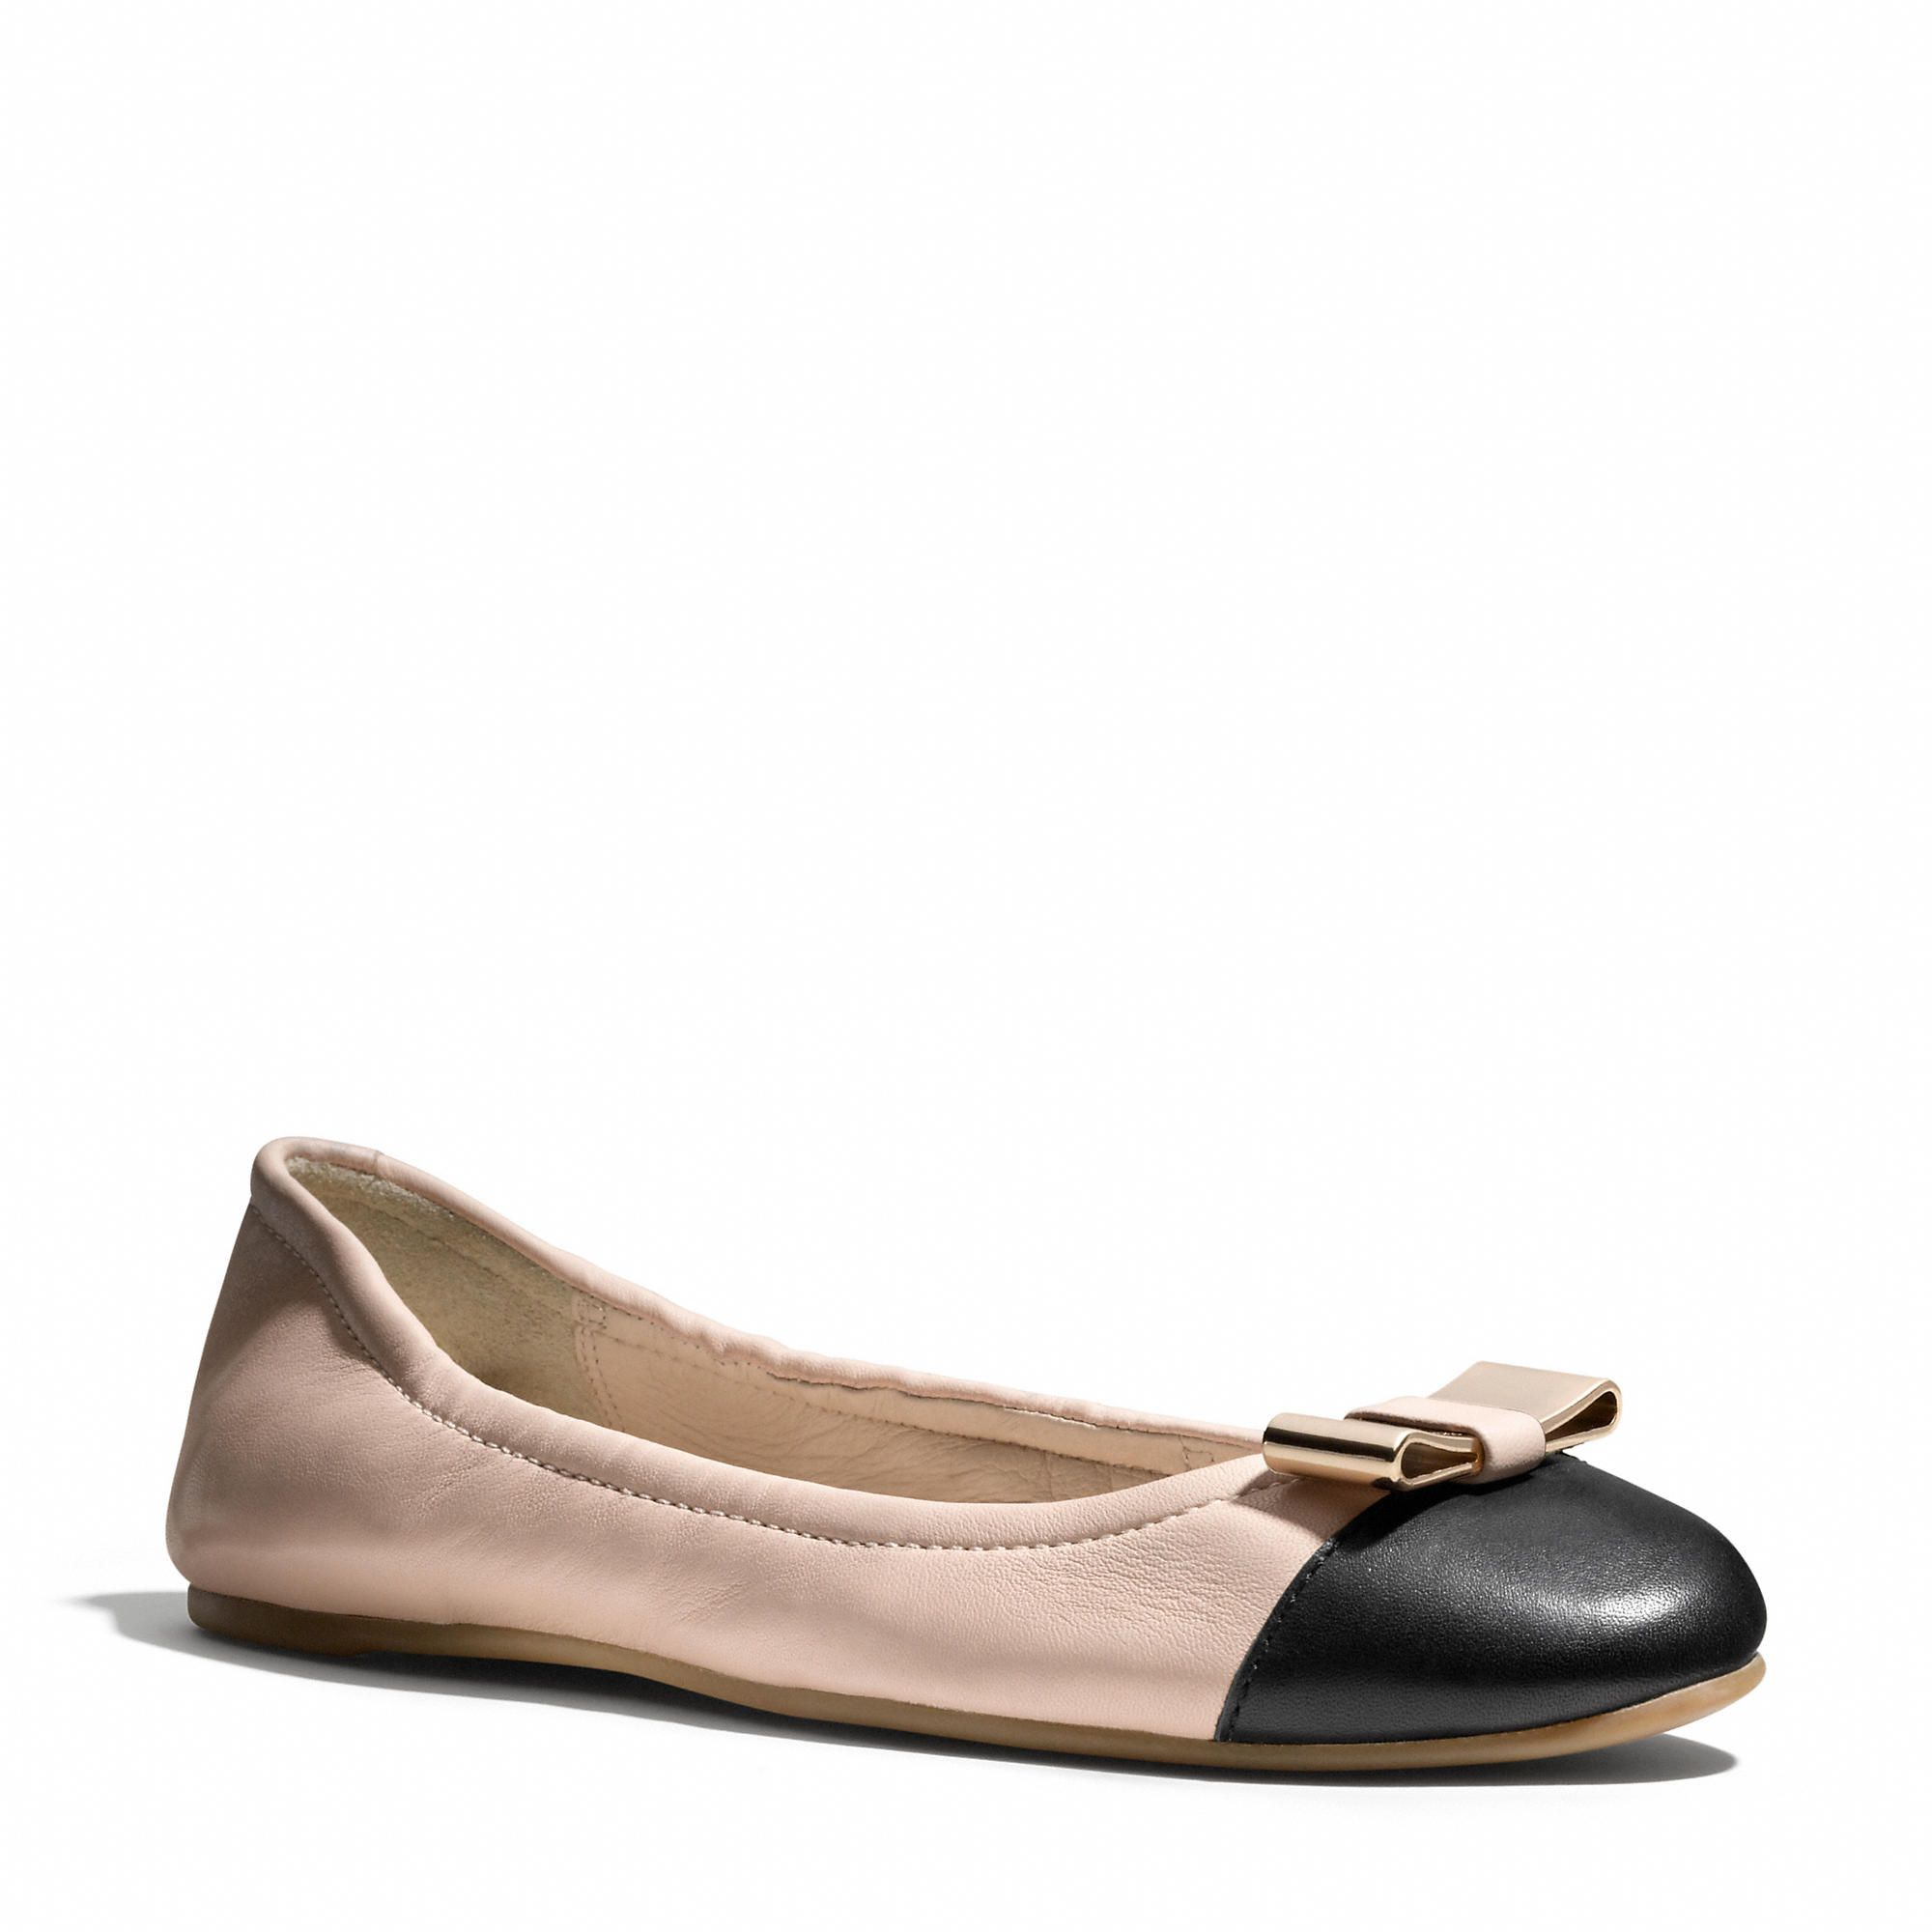 Shop COACH flats and loafers at Coach.com